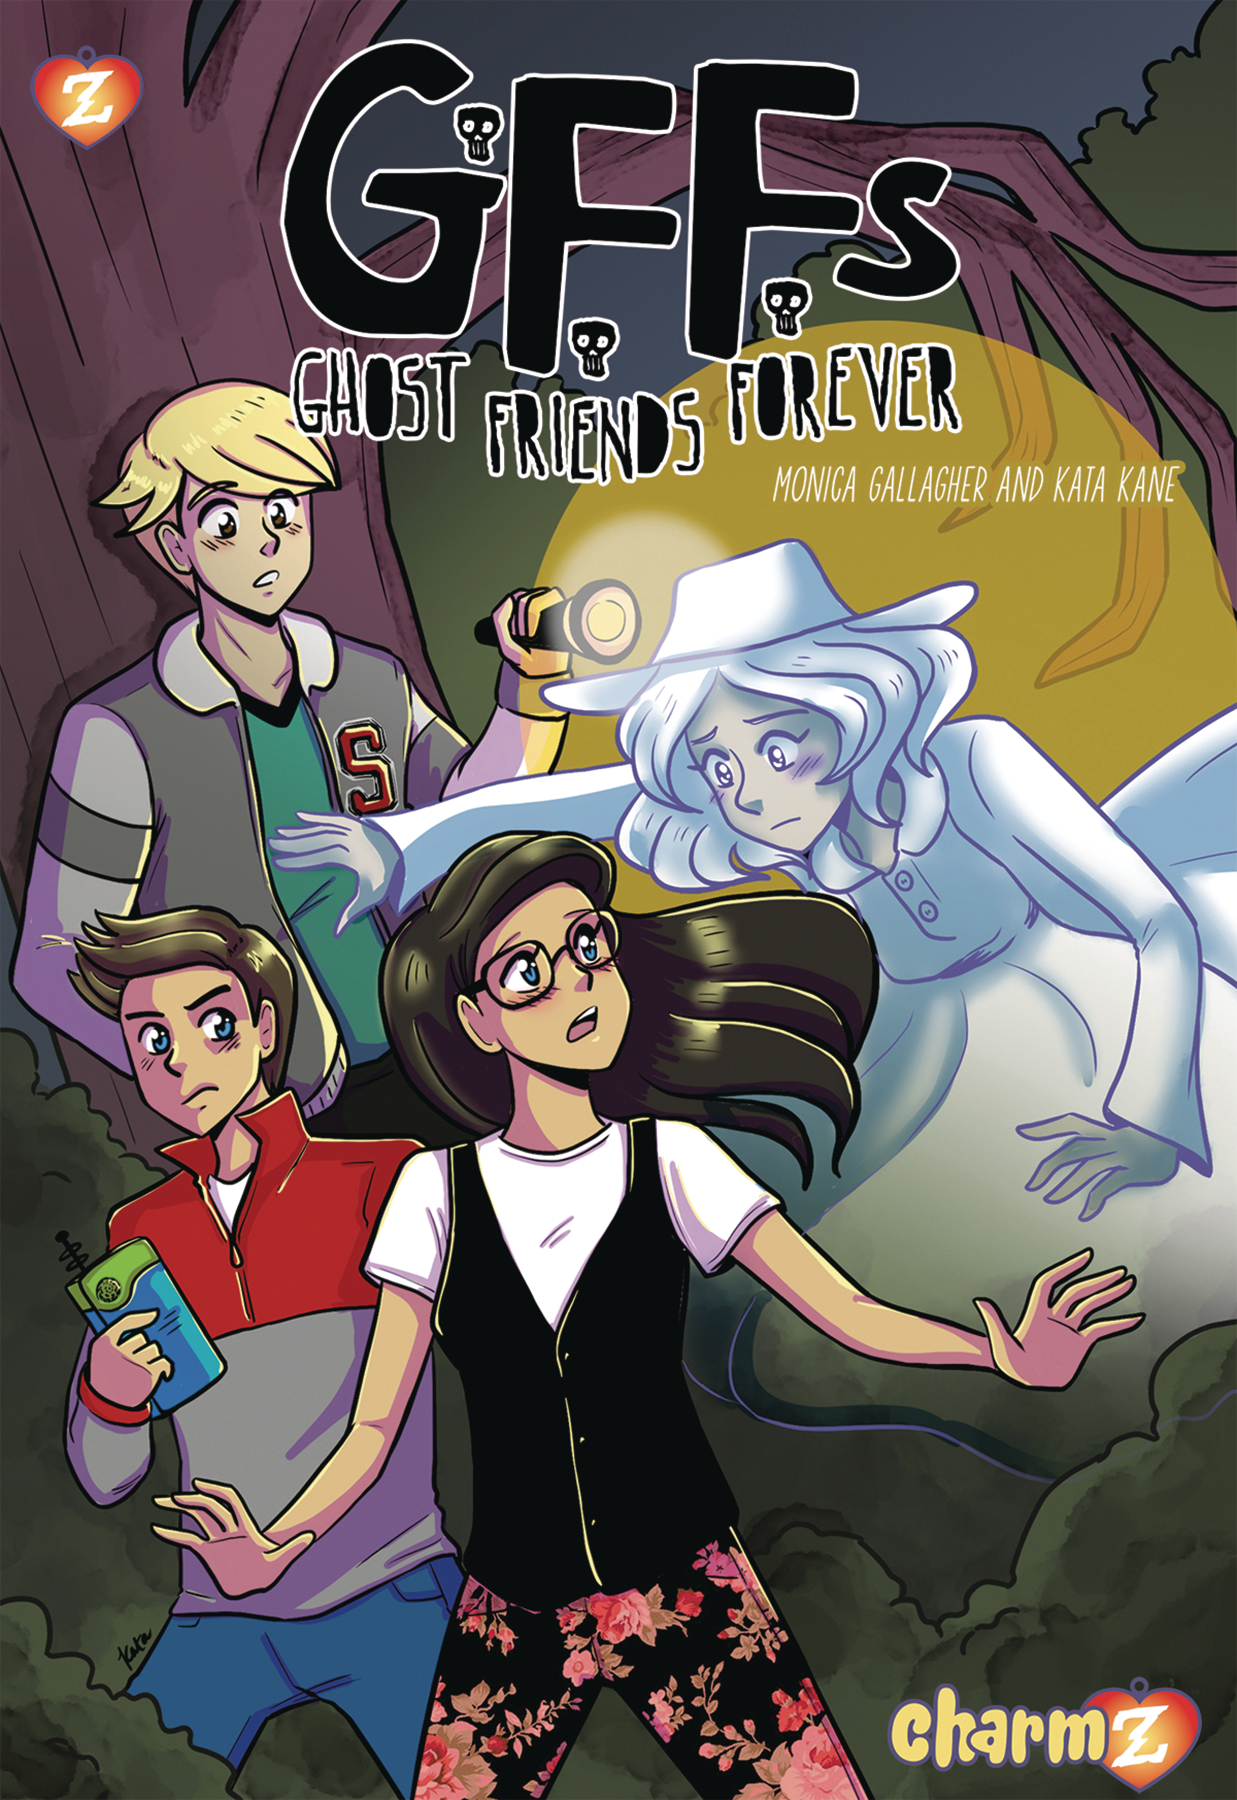 GHOST FRIENDS FOREVER HC VOL 01 (O/A)